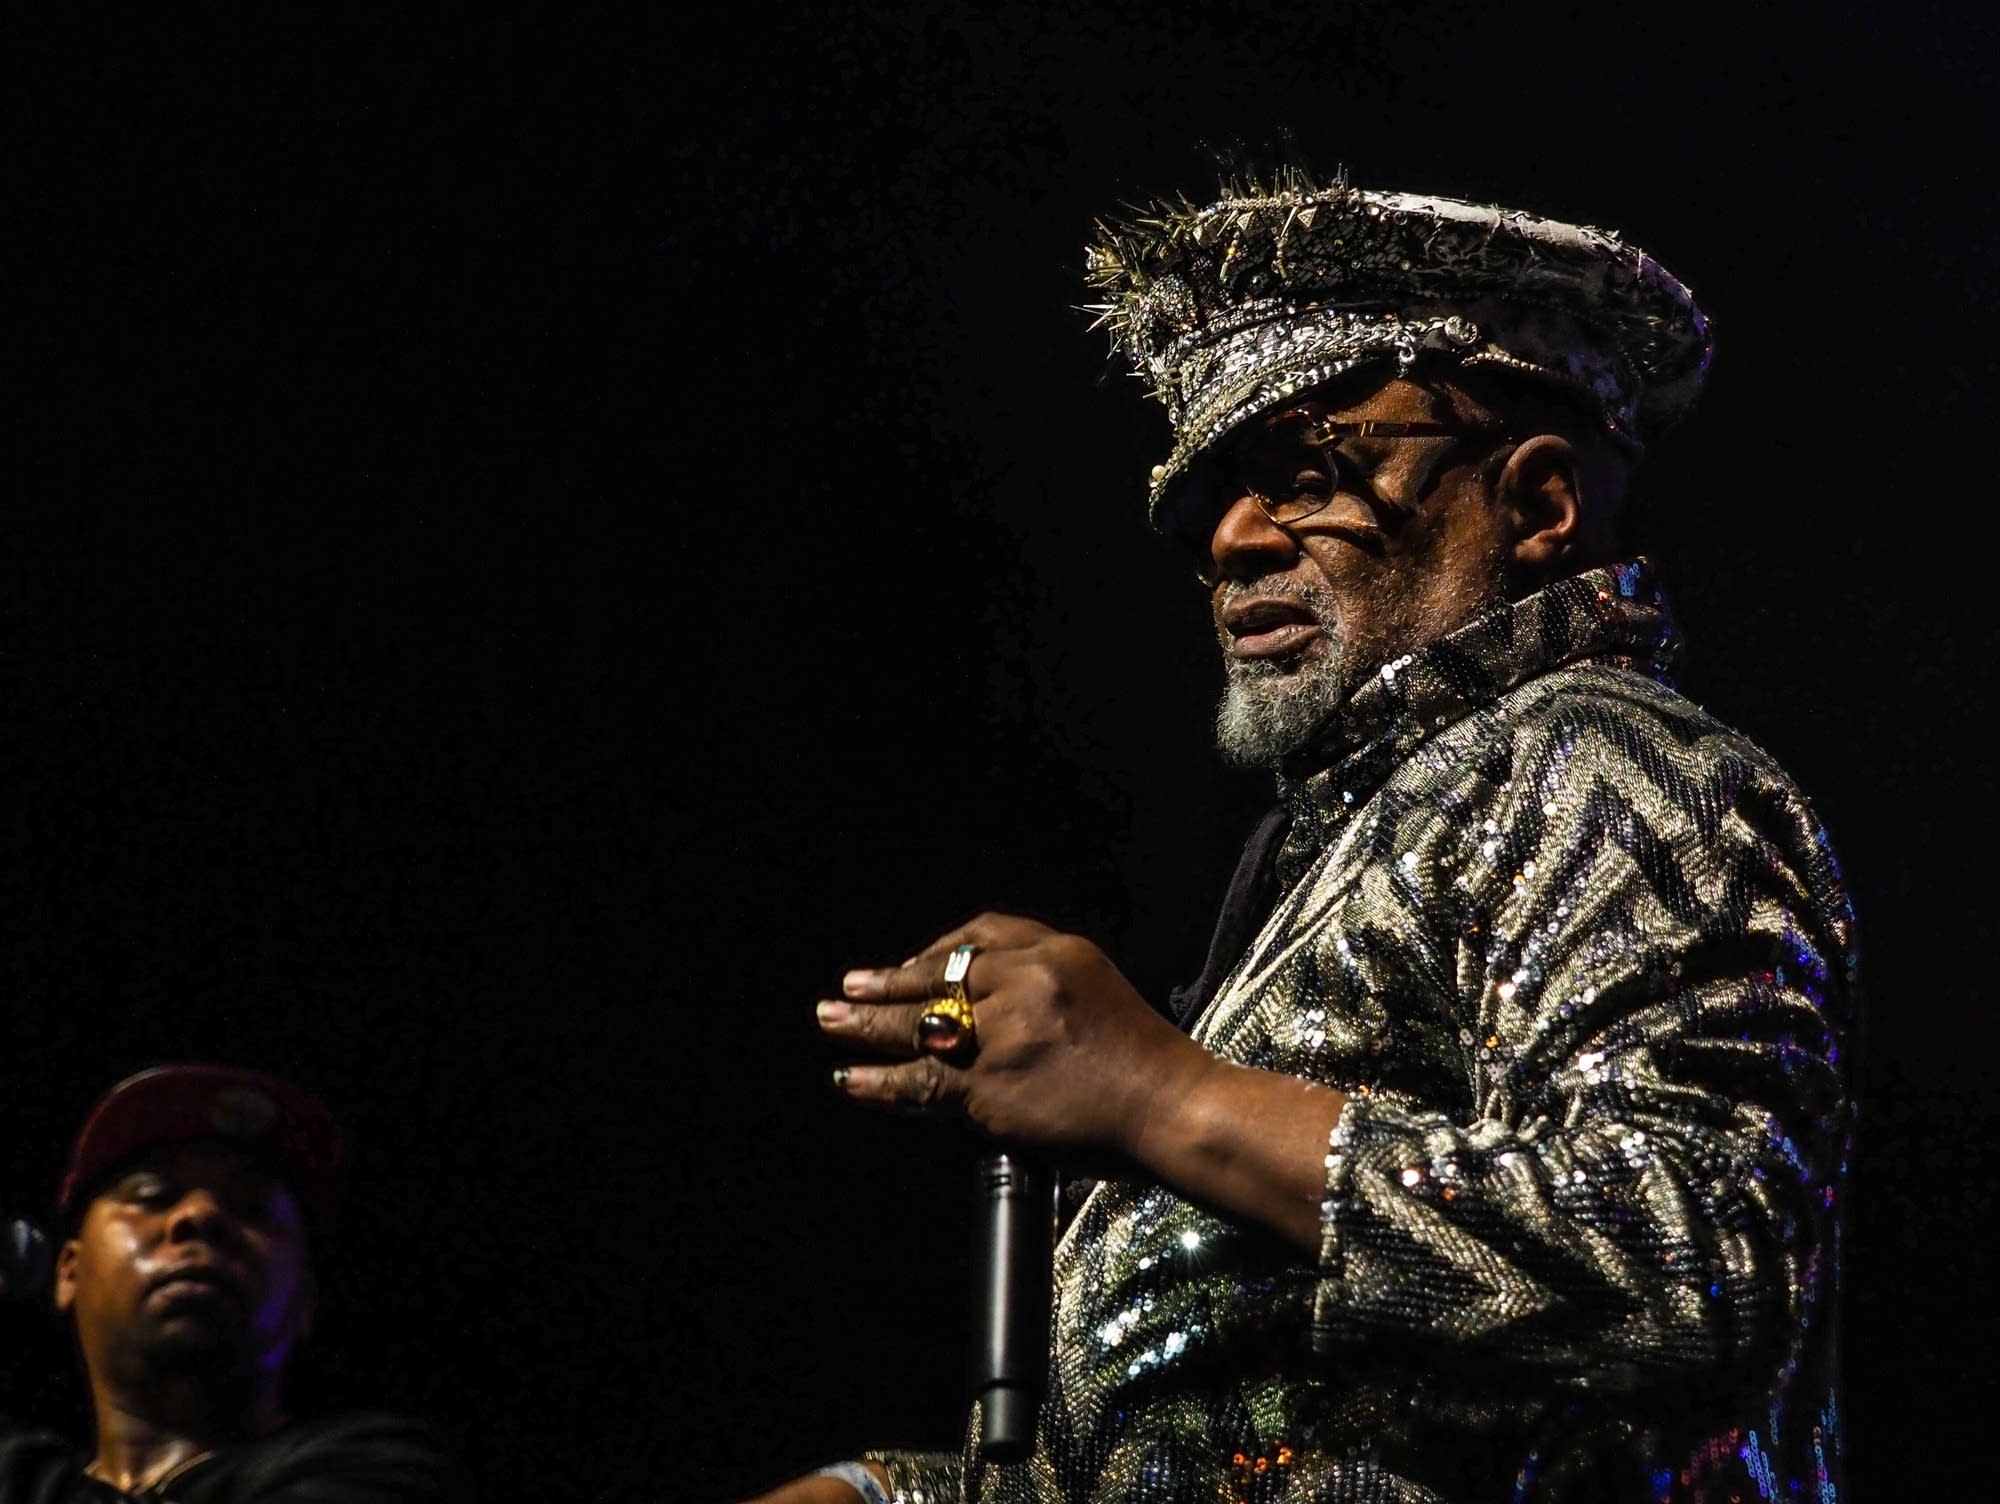 George Clinton performs at Paisley Park